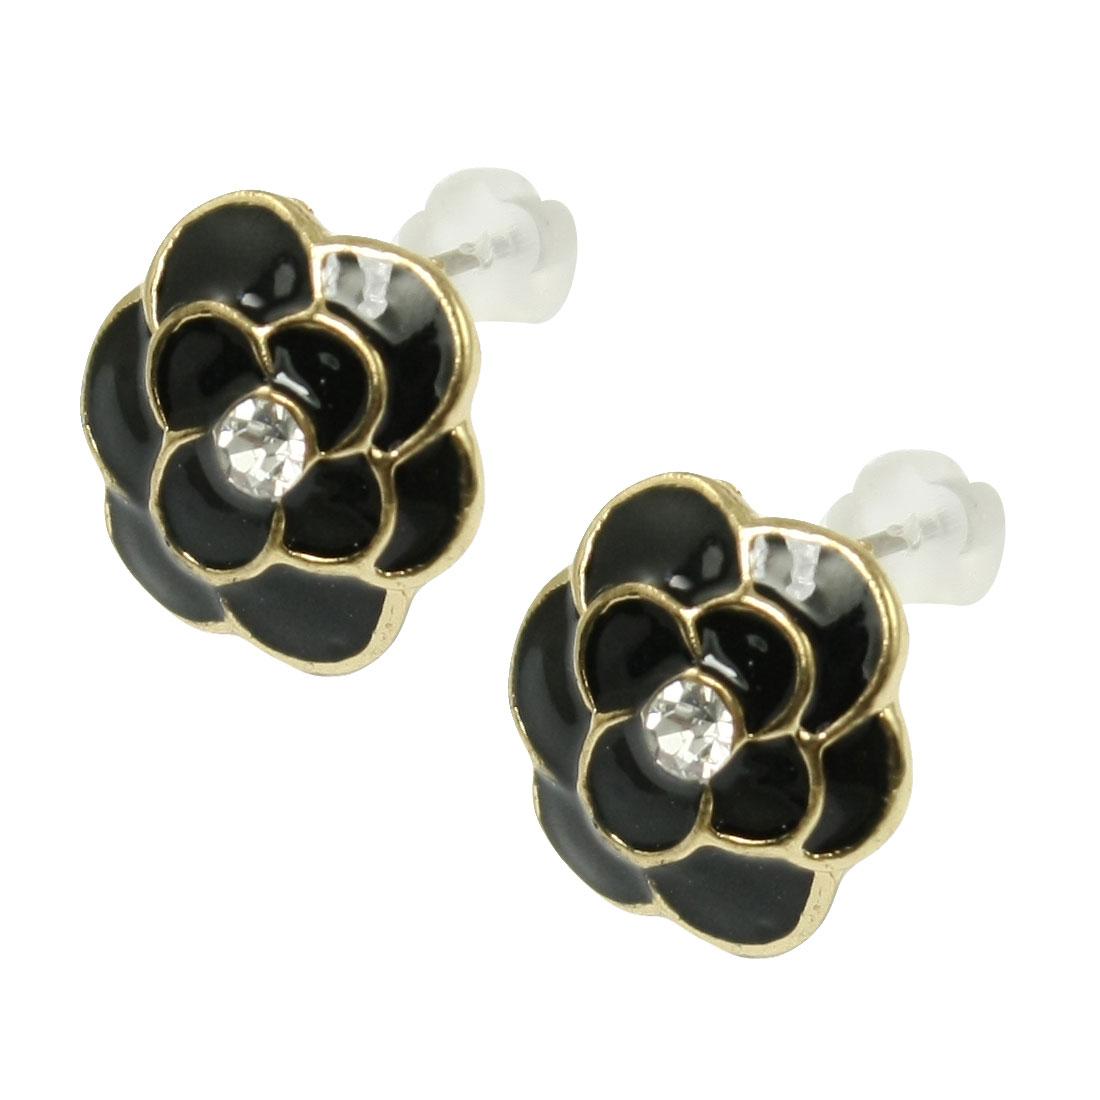 2 Pcs Gold Tone Trimmed Black Flower Accent Stud Earrings for Lady